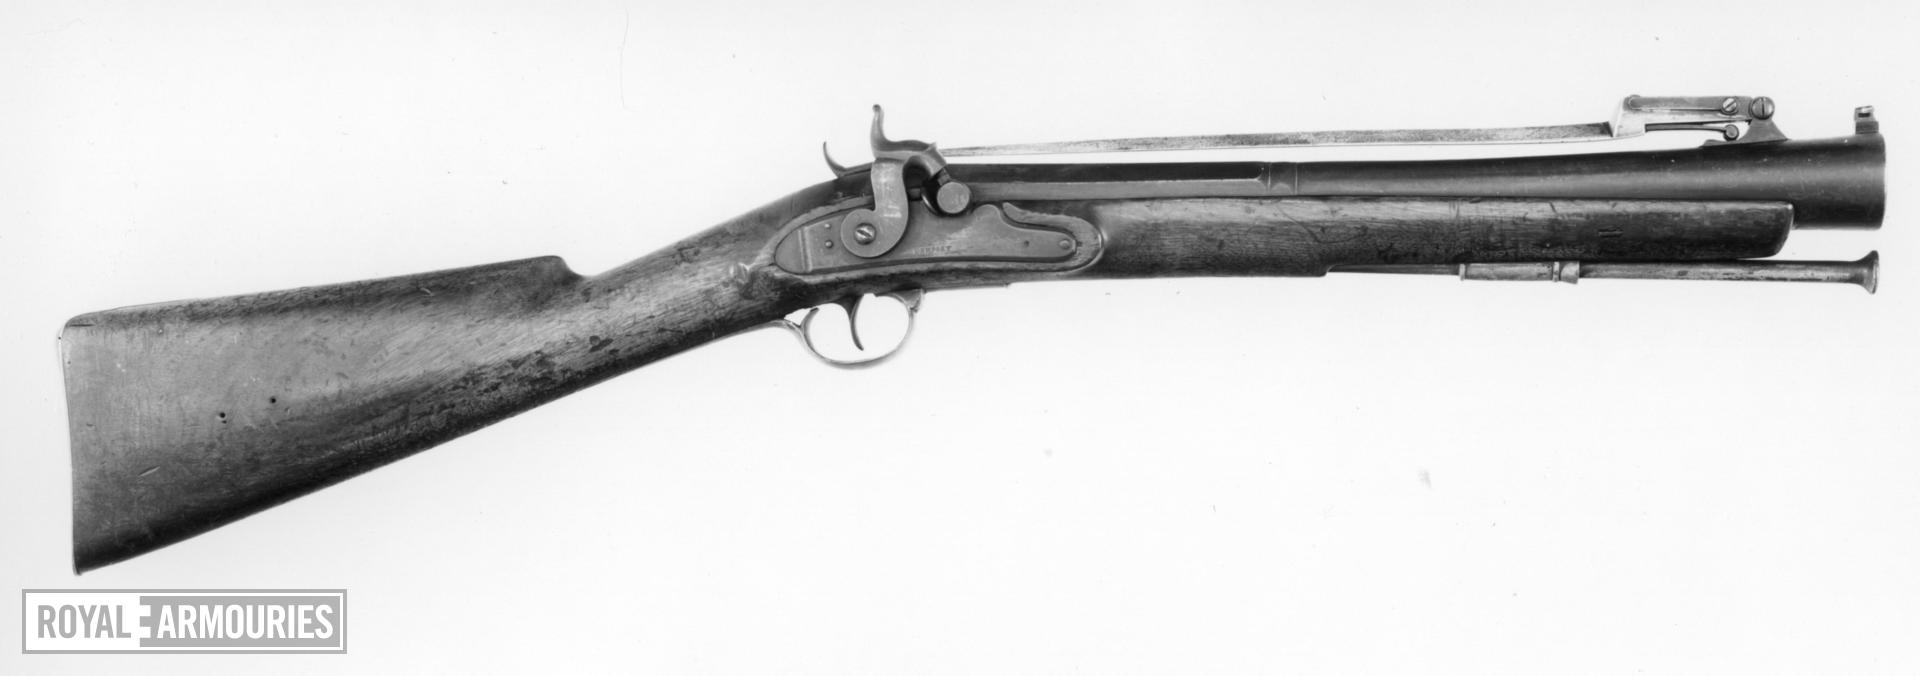 Percussion muzzle-loading blunderbuss - By Dempsey